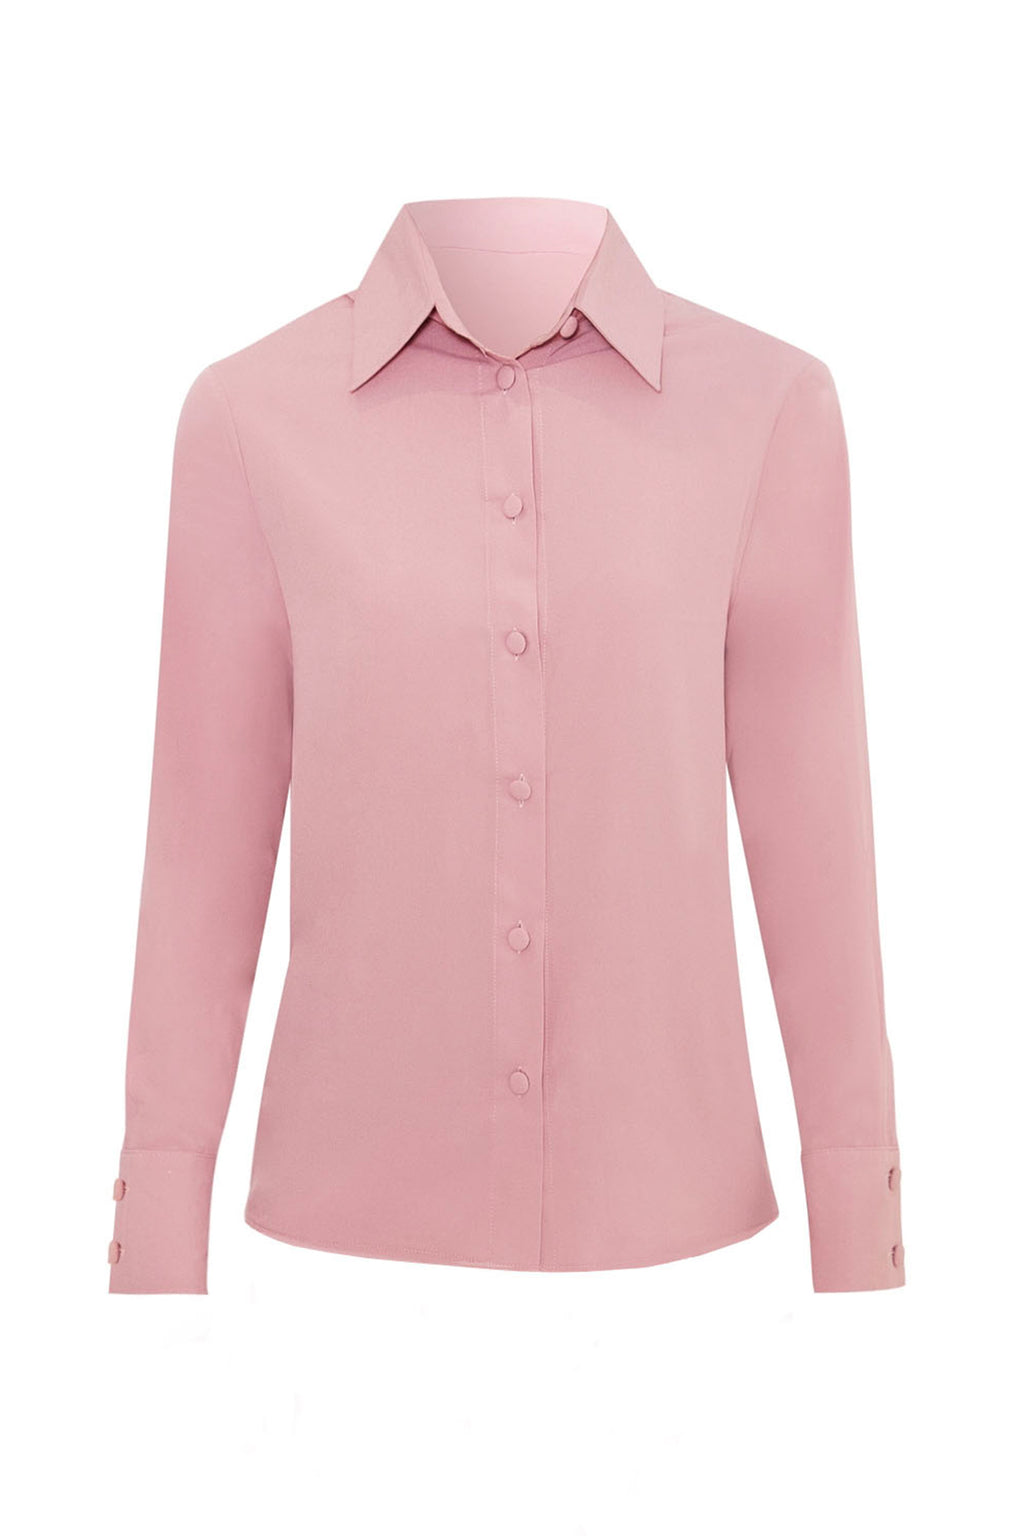 Dusty Pink Shirt